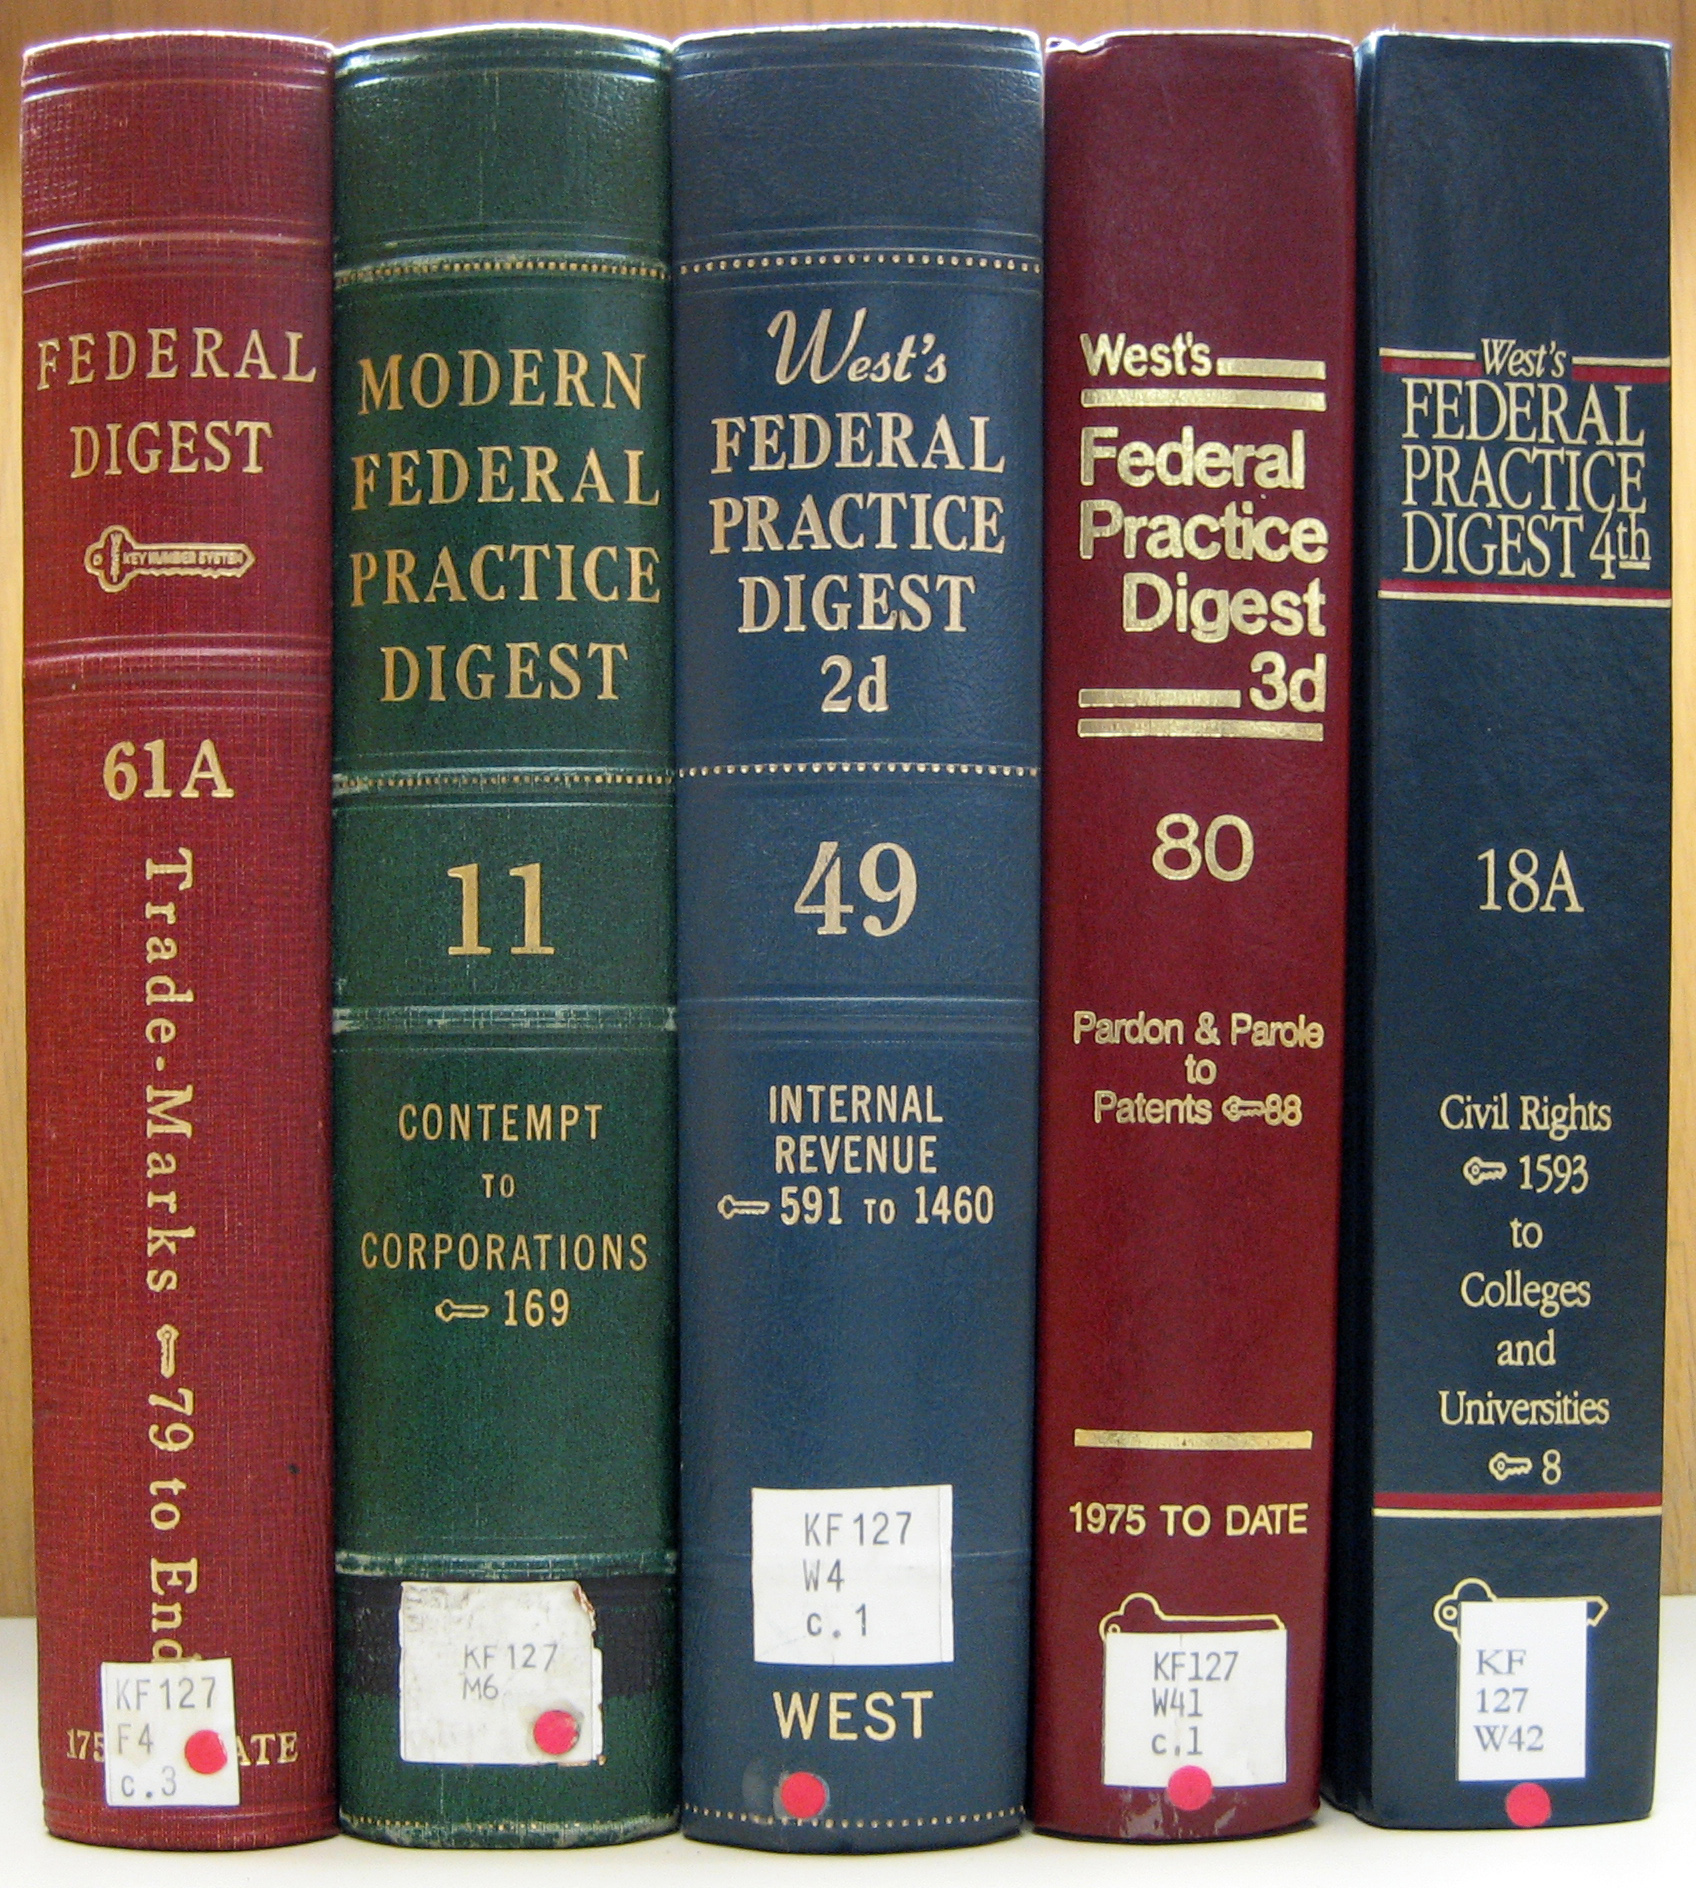 Federal Practice Digest books